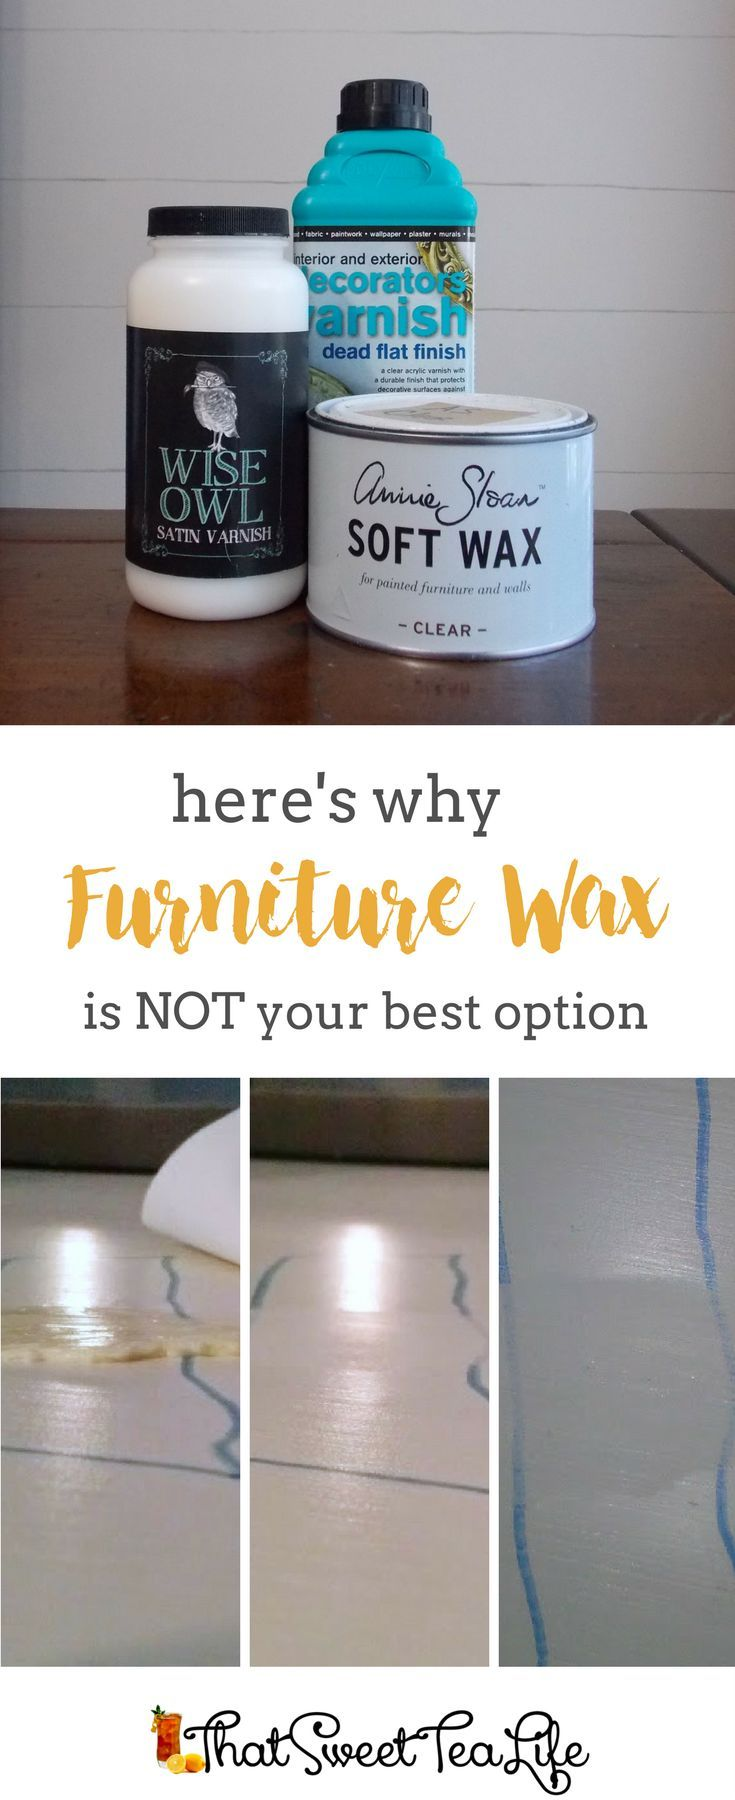 This is why Furniture Wax is not your best option on Chalk Painted Furniture by That Sweet Tea Life | How to Top Coat | How to use Furniture Wax | How to paint Furniture | How to Seal Furniture | Furniture Makeover DIY | Furniture Wax Finish | Furniture Waxing Tips | How to use Furniture Wax | Furniture Painting Tips | Soft Wax | Owl Wise | Chalk Paint